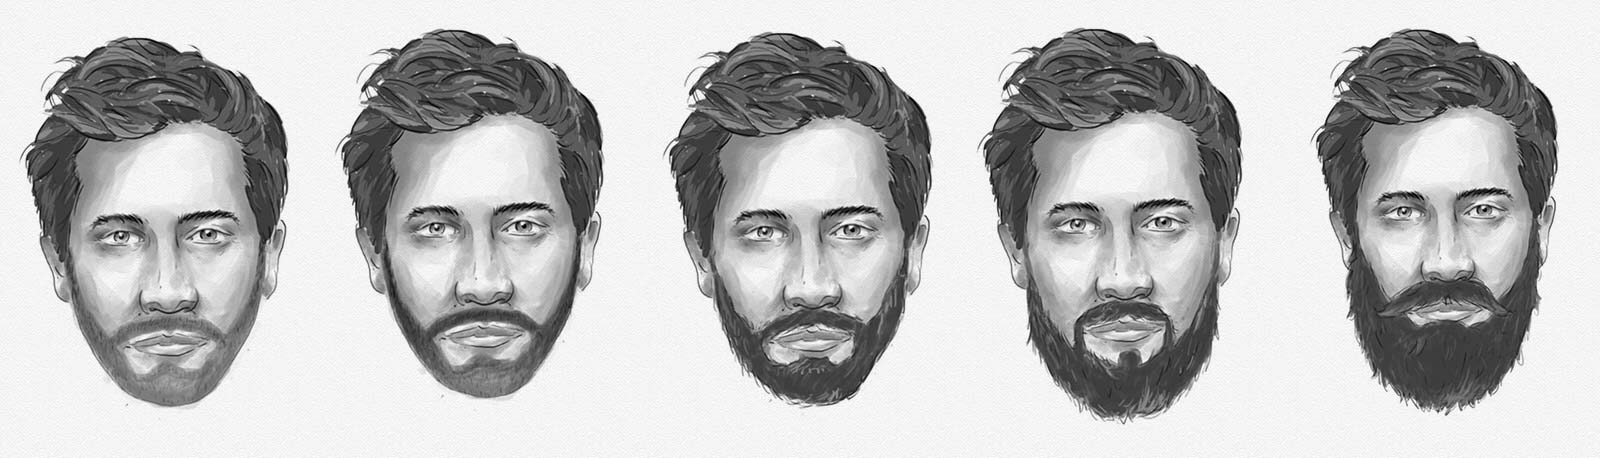 4 Beard Growth Stages You Should Know About - Are You